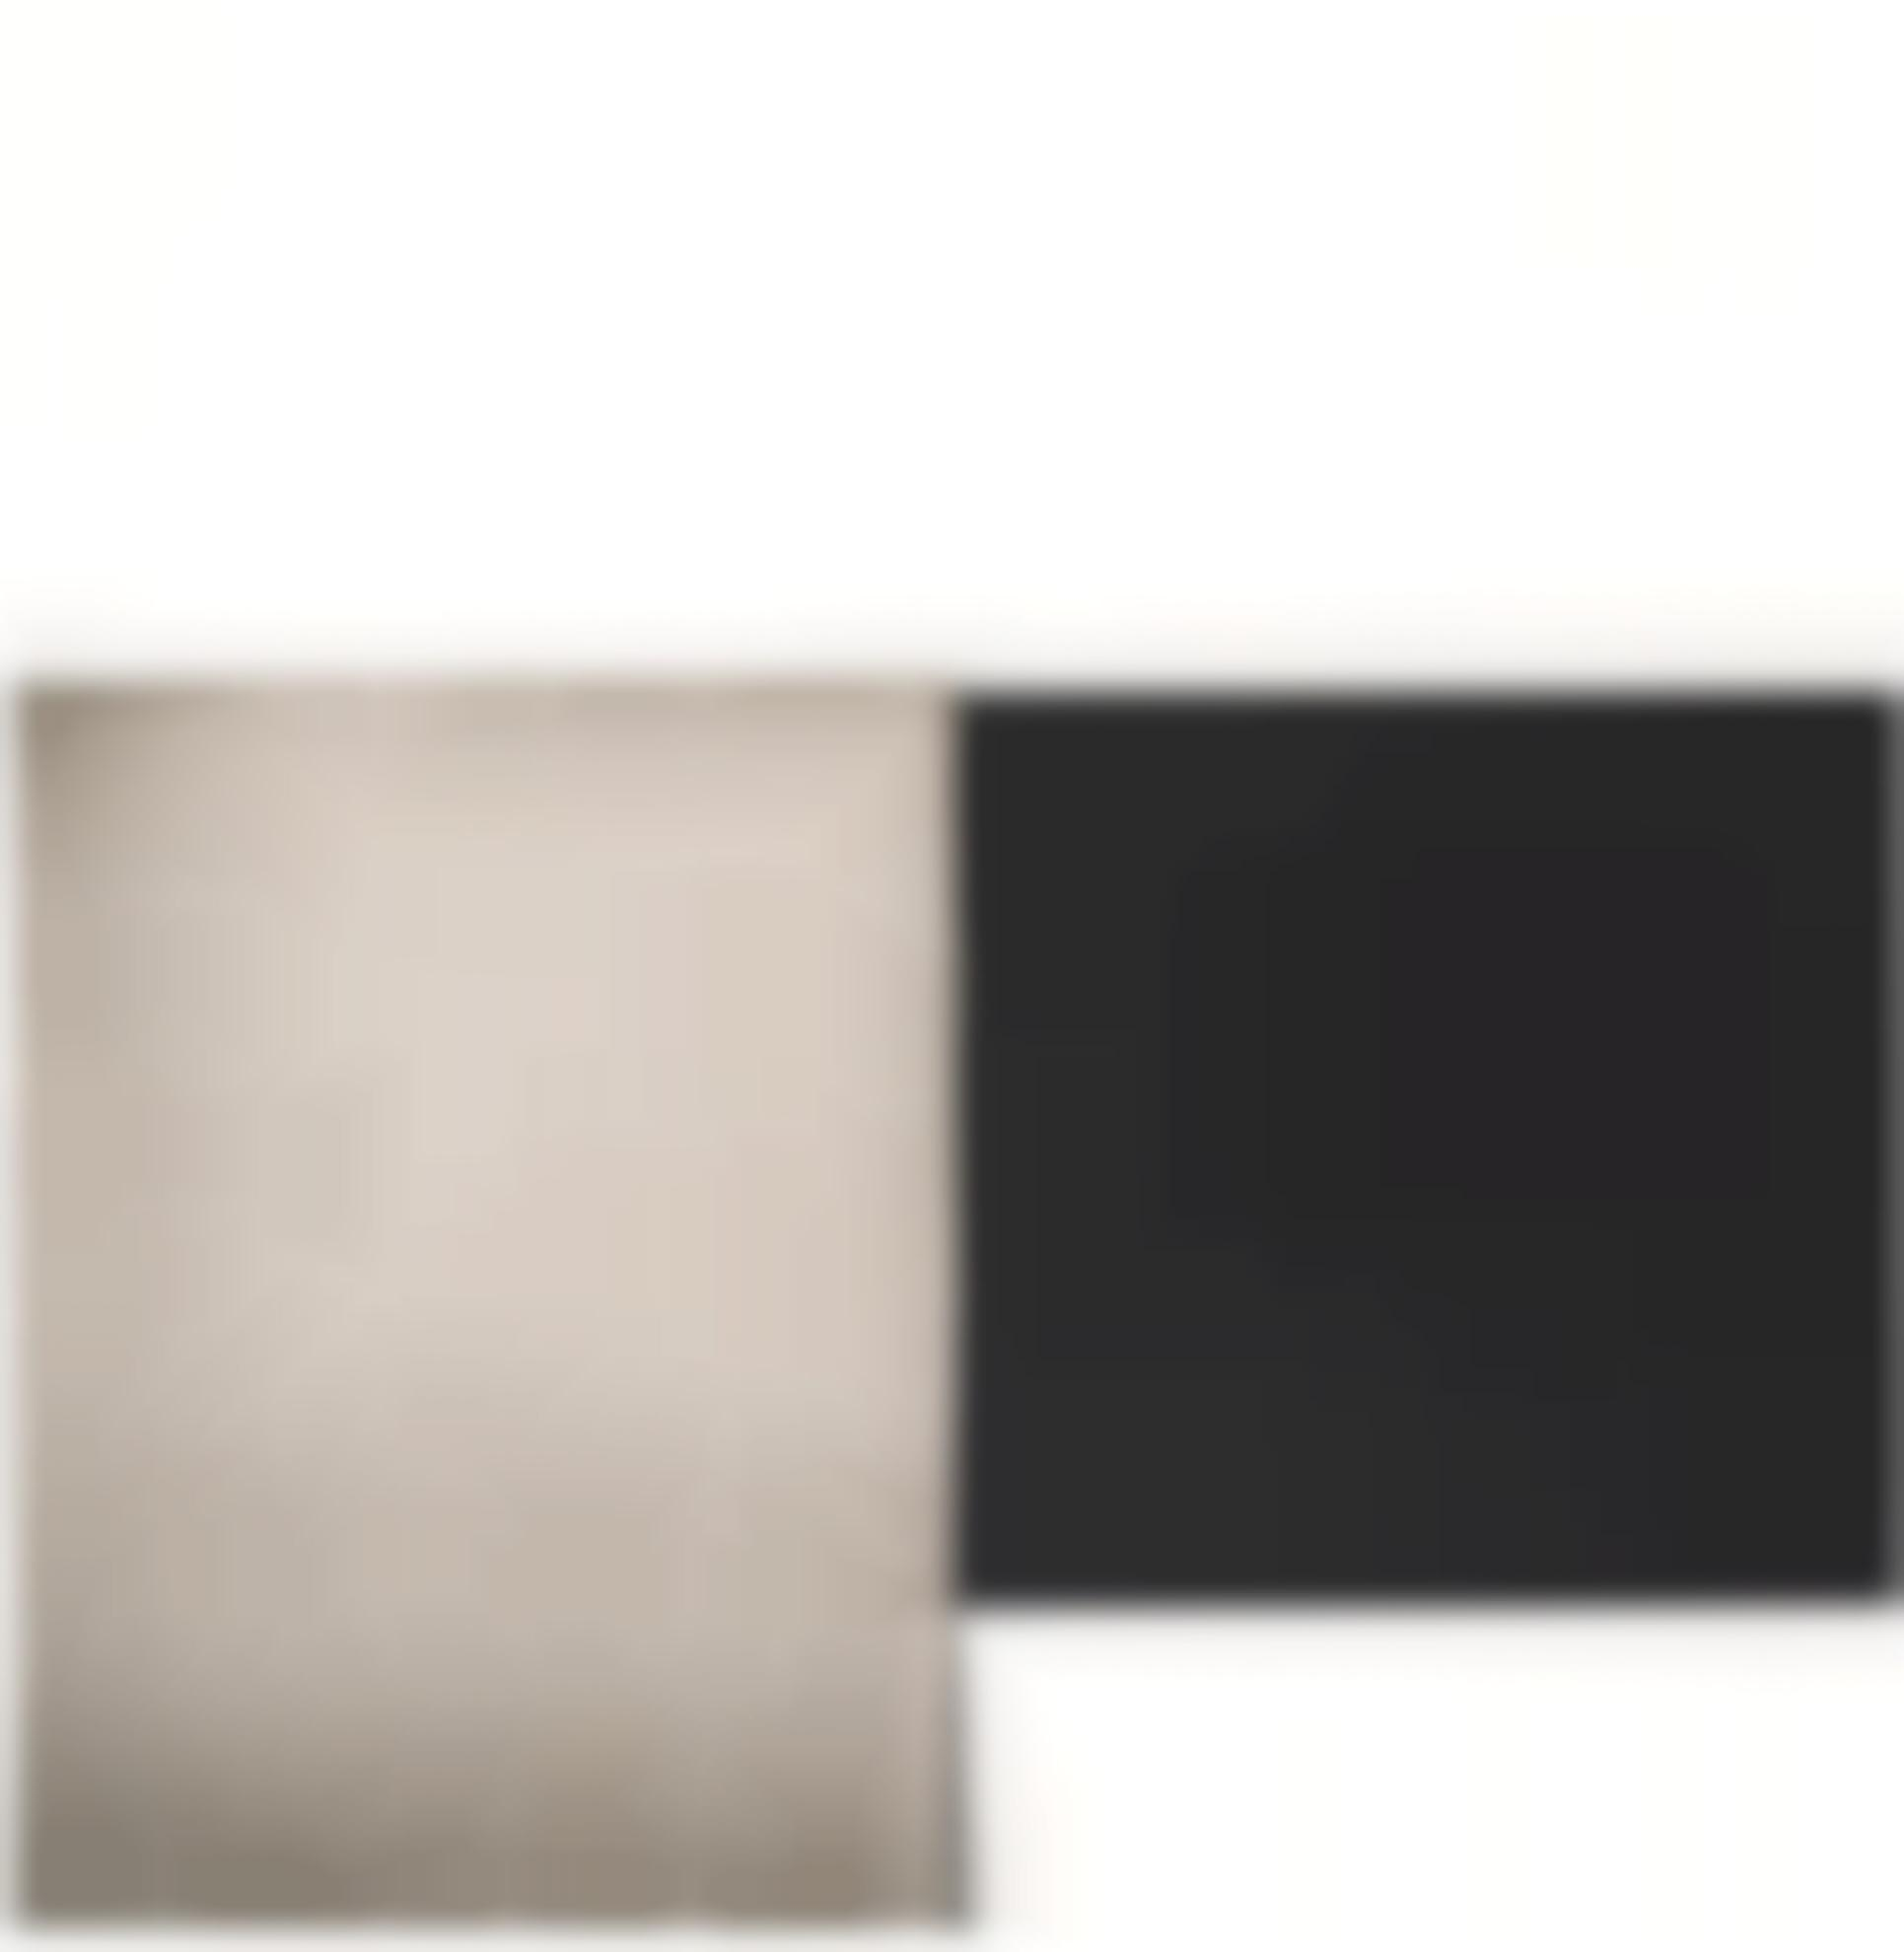 Callum Innes-Exposed Painting Ivory Black Yellow Oxide-2001